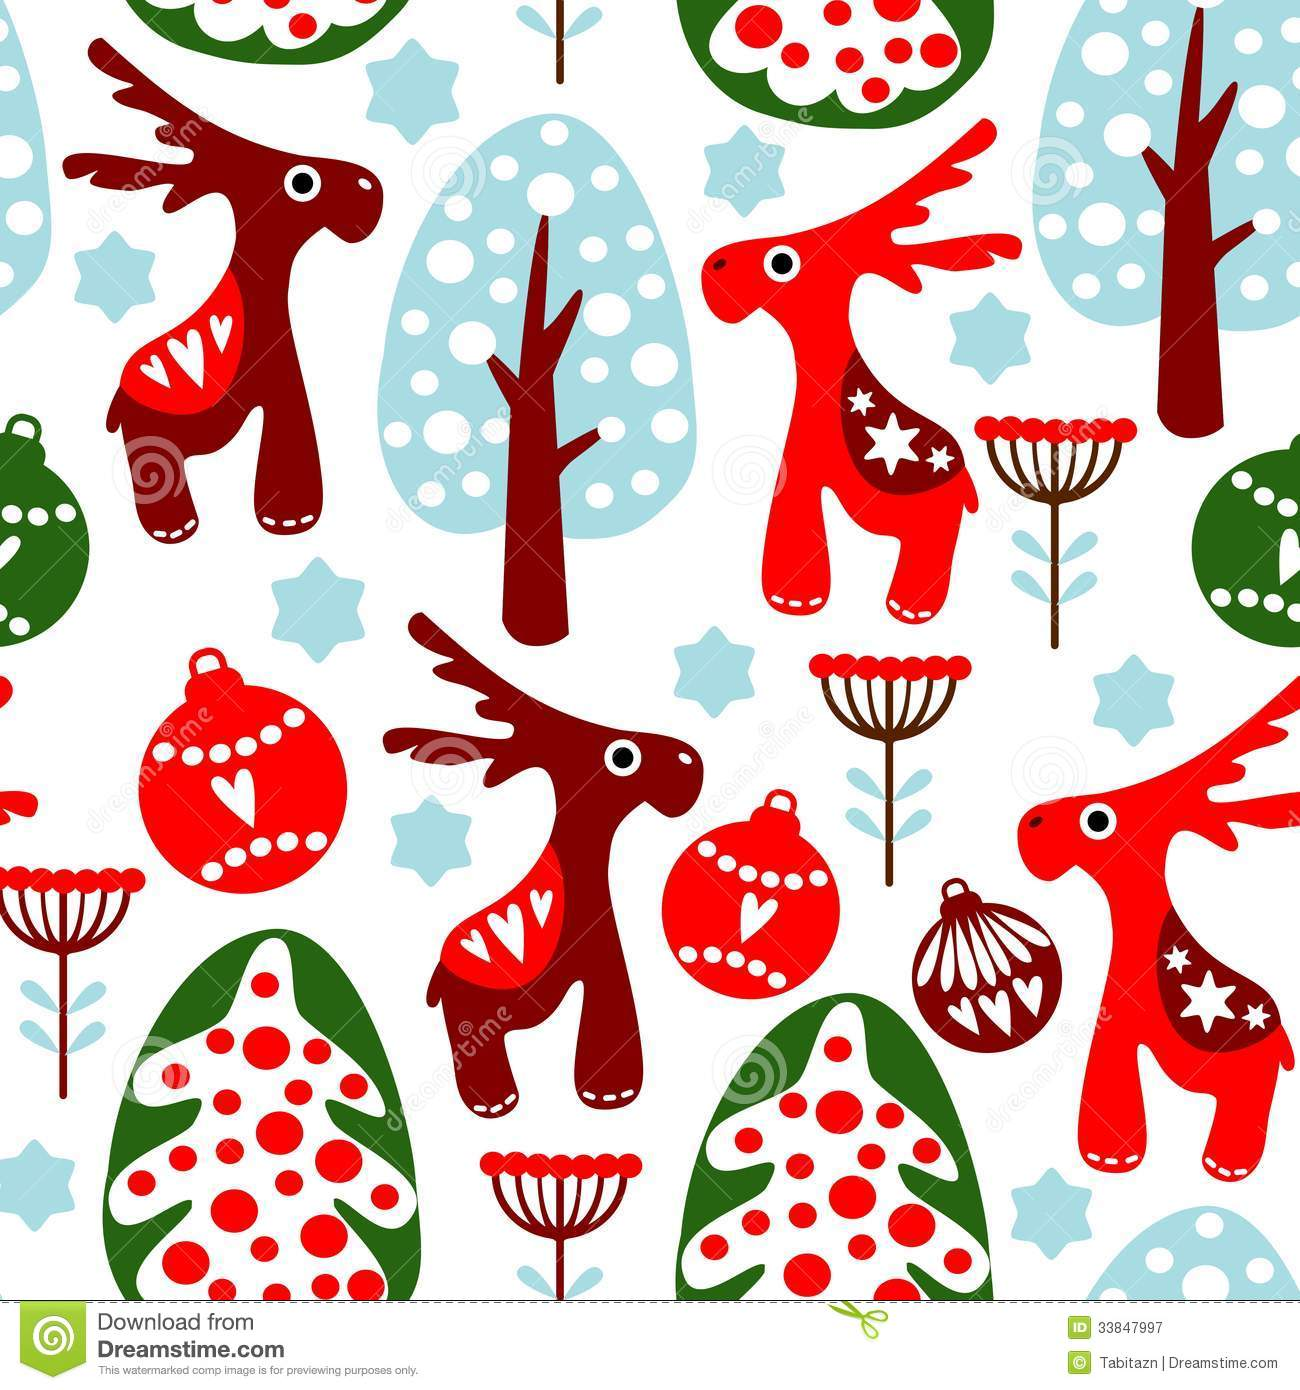 Retro christmas decorations - Cute Seamless Pattern With Christmas Balls Reind Royalty